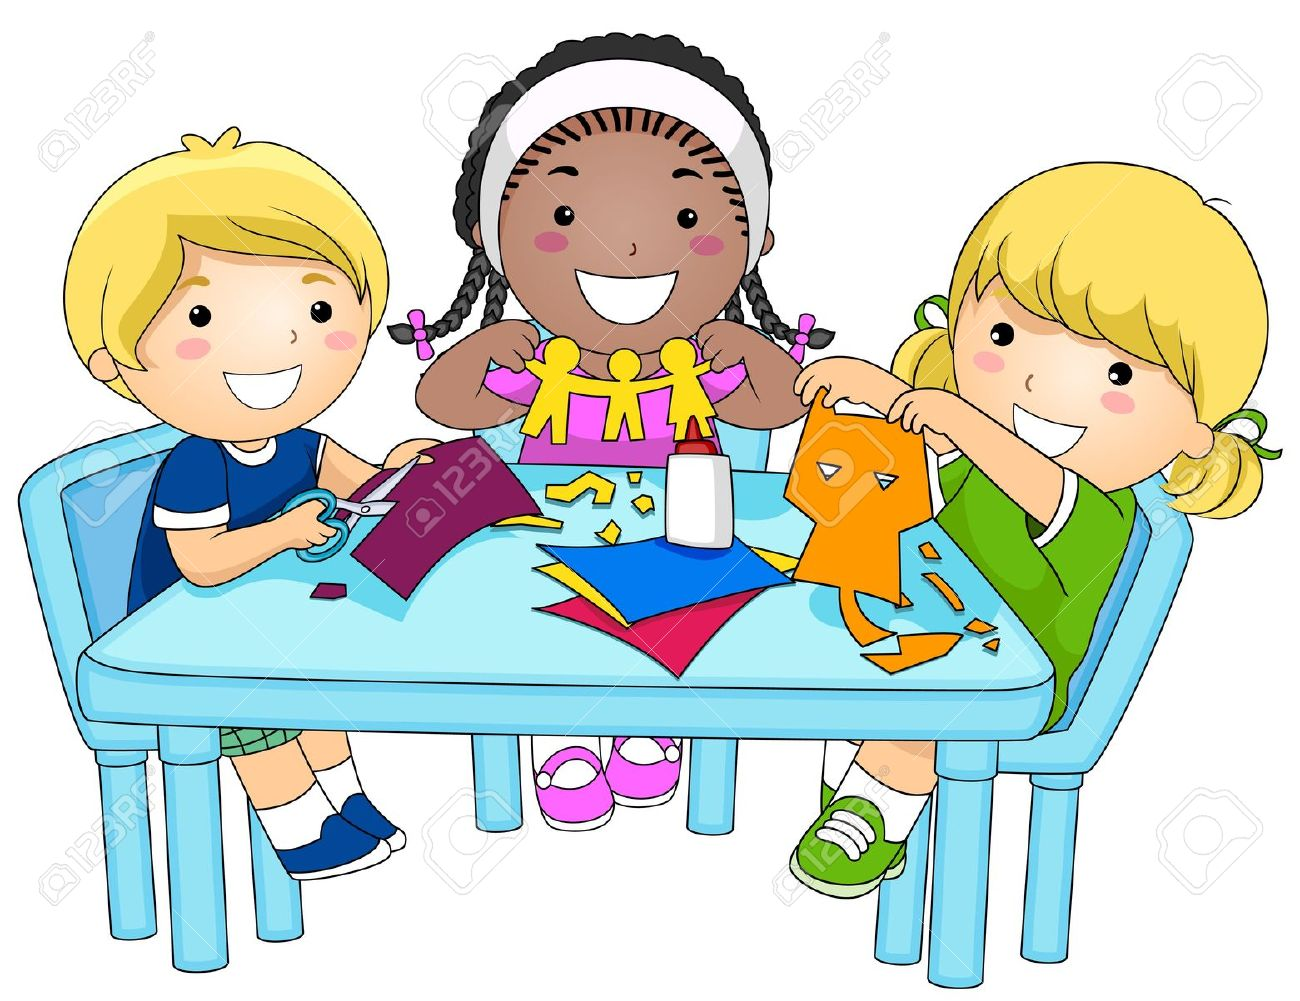 Activities clipart group, Activities group Transparent FREE.